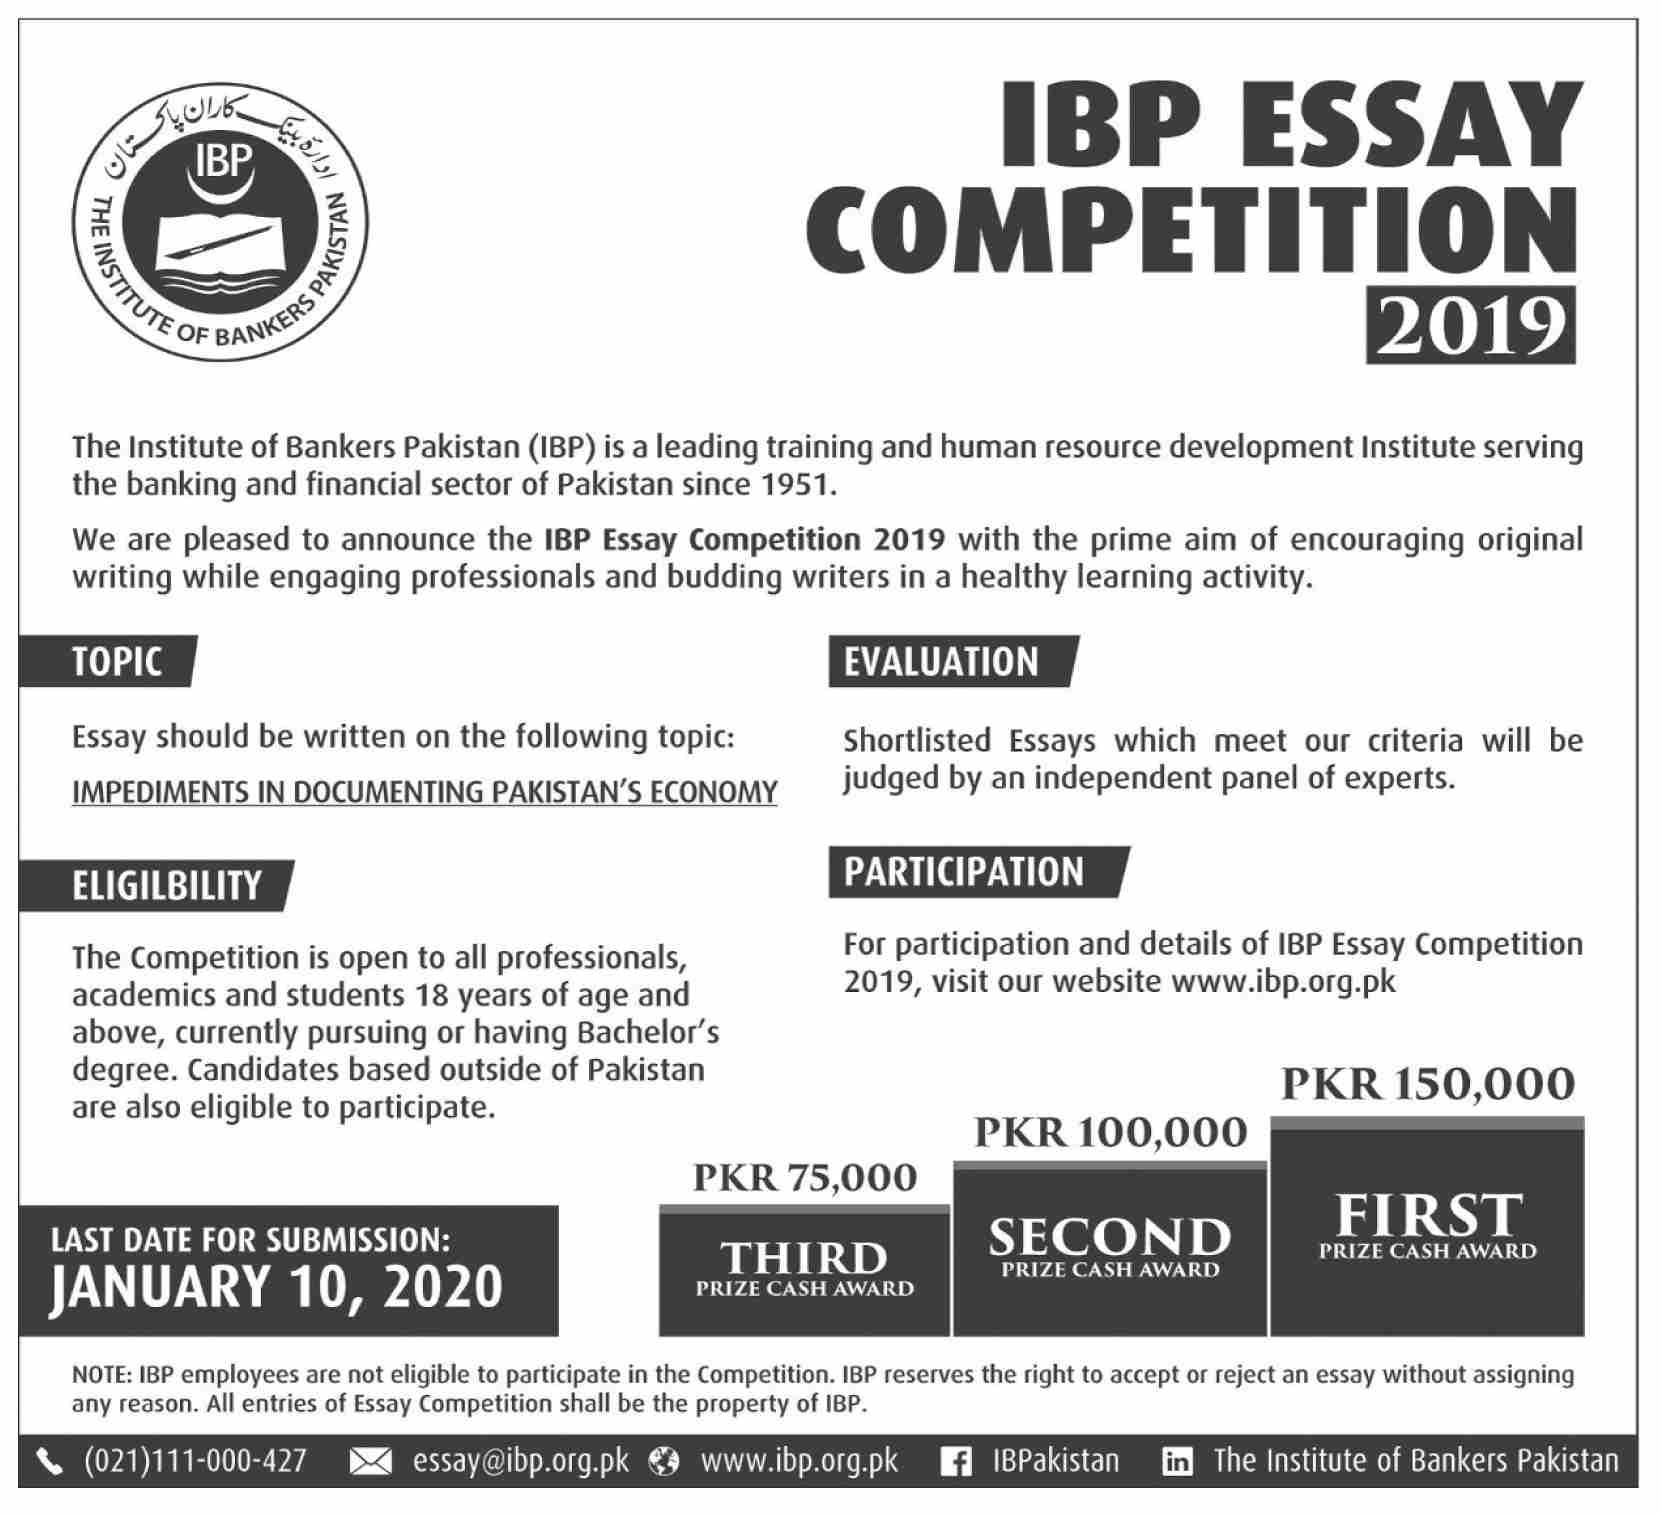 Essay Competition 2019 - Institute of Bankers Pakistan (IBP)